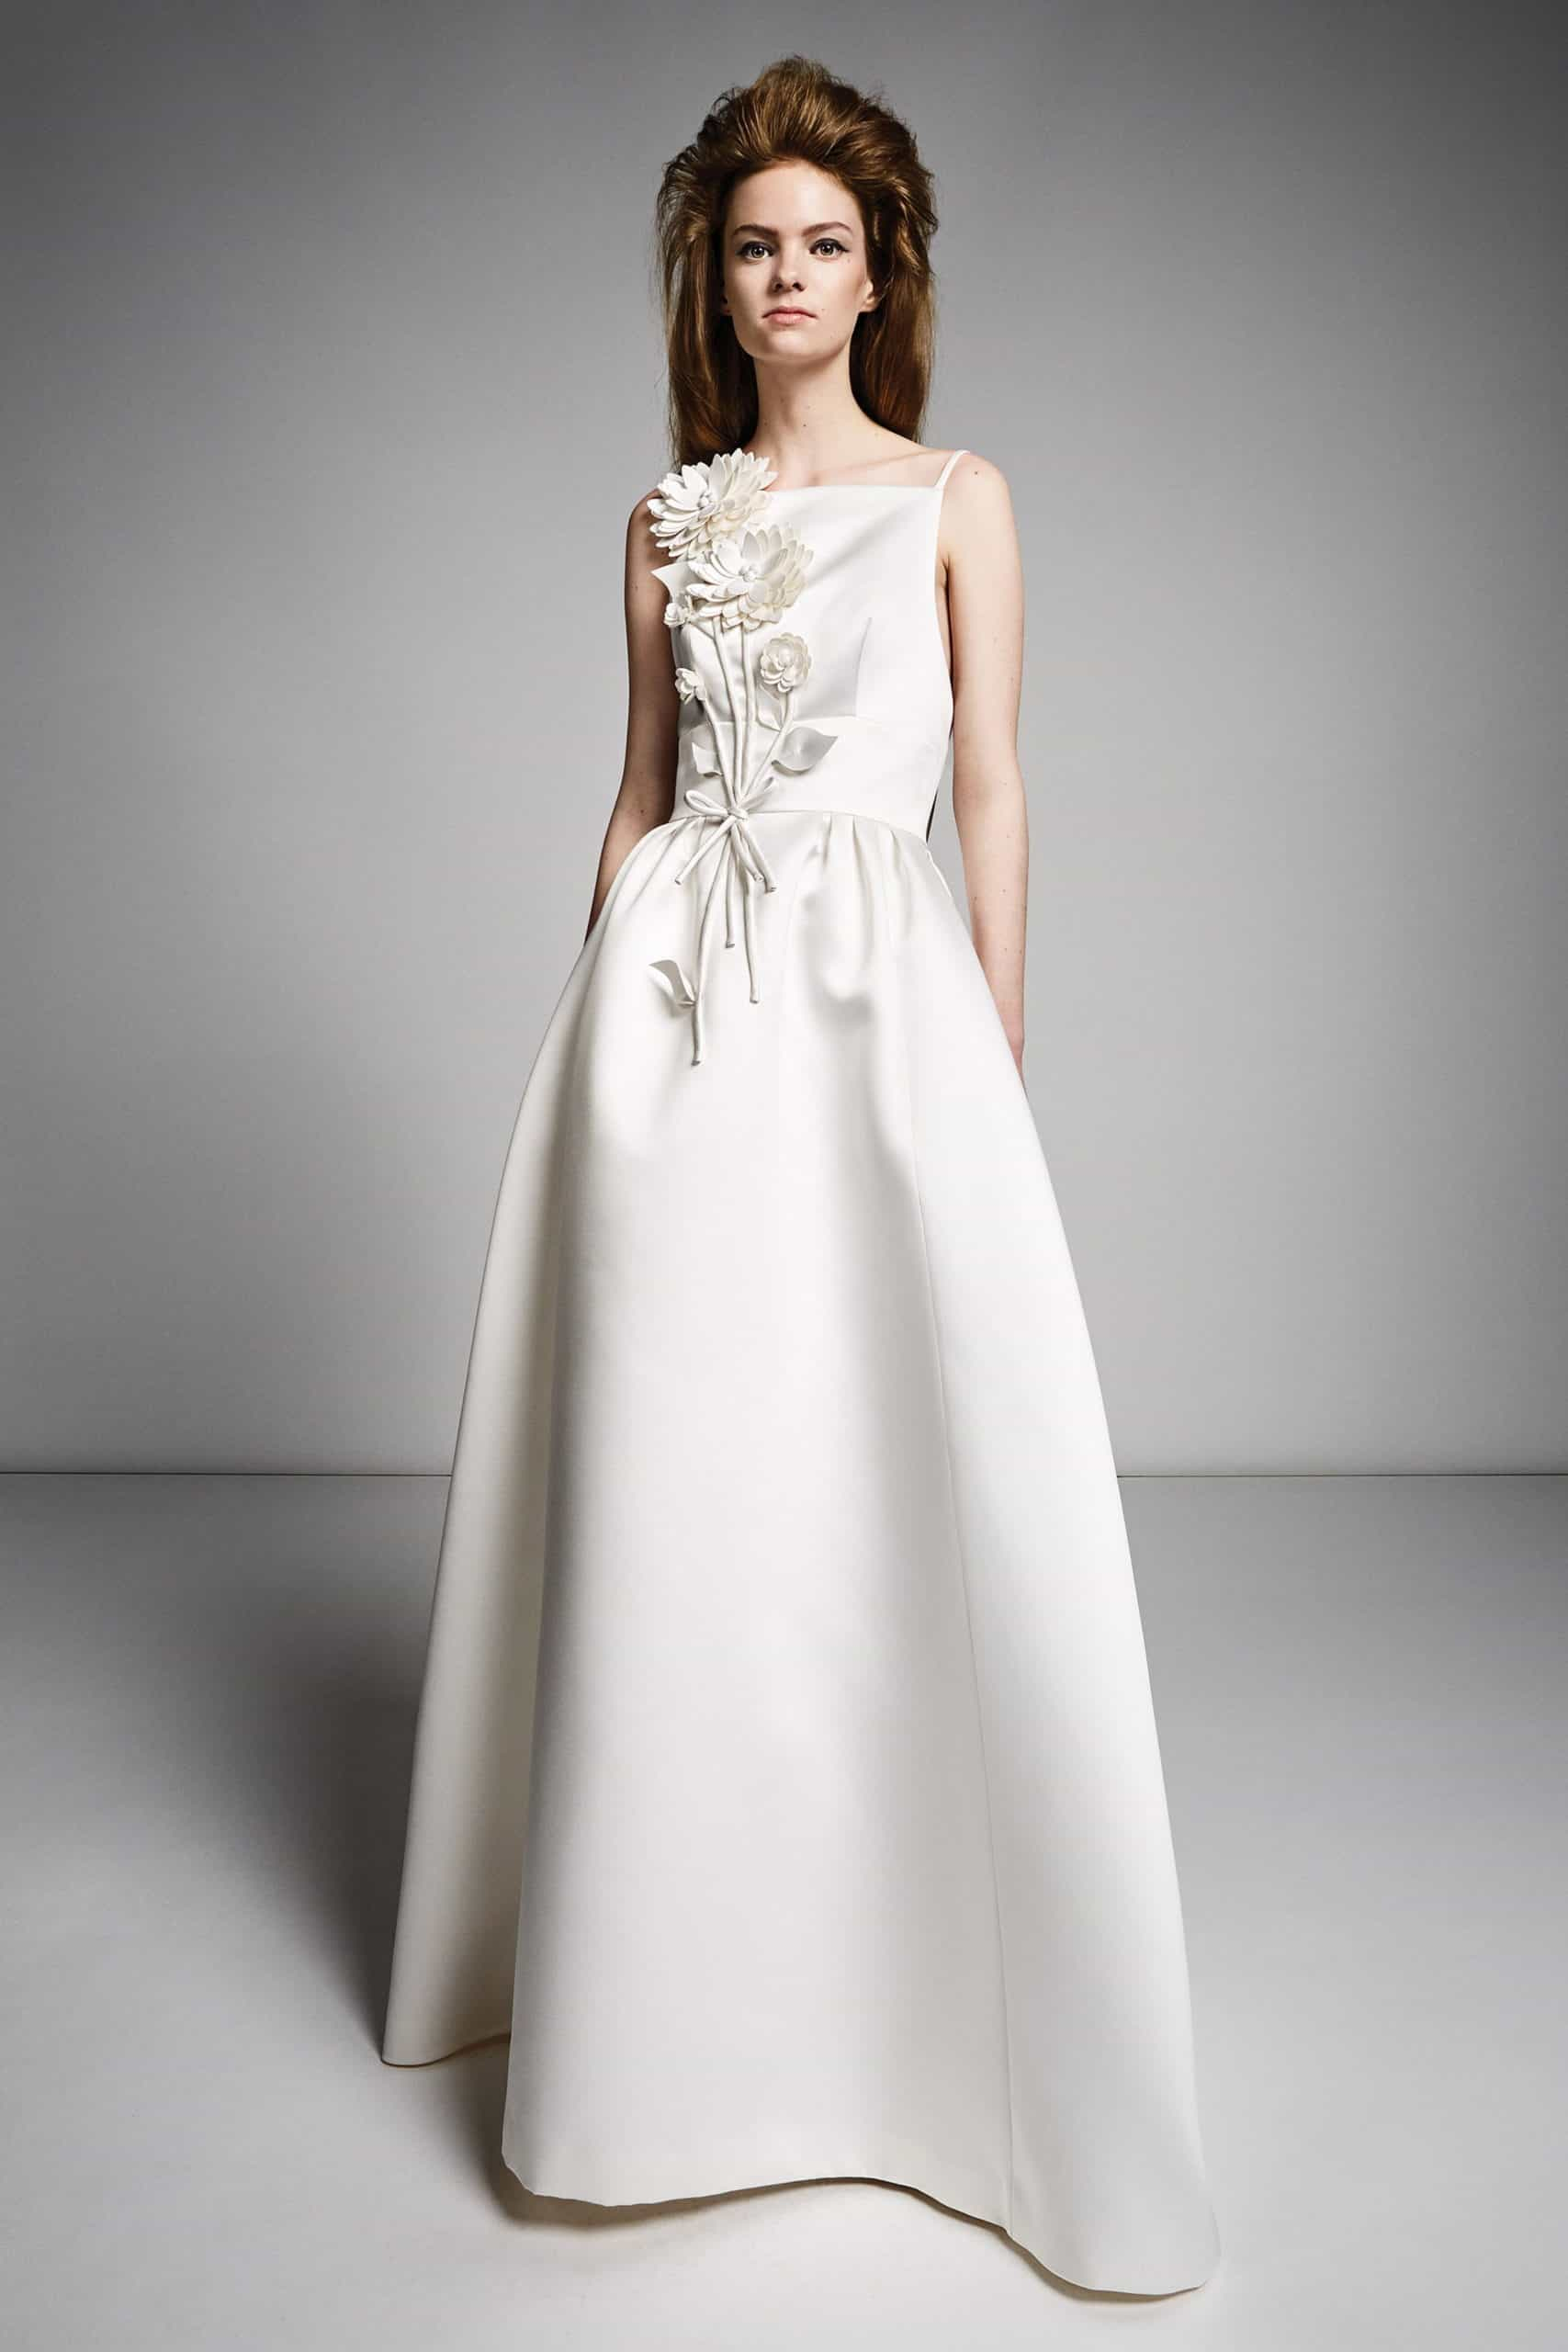 silk wedding dress with embossed flowers by Viktor and Rolf